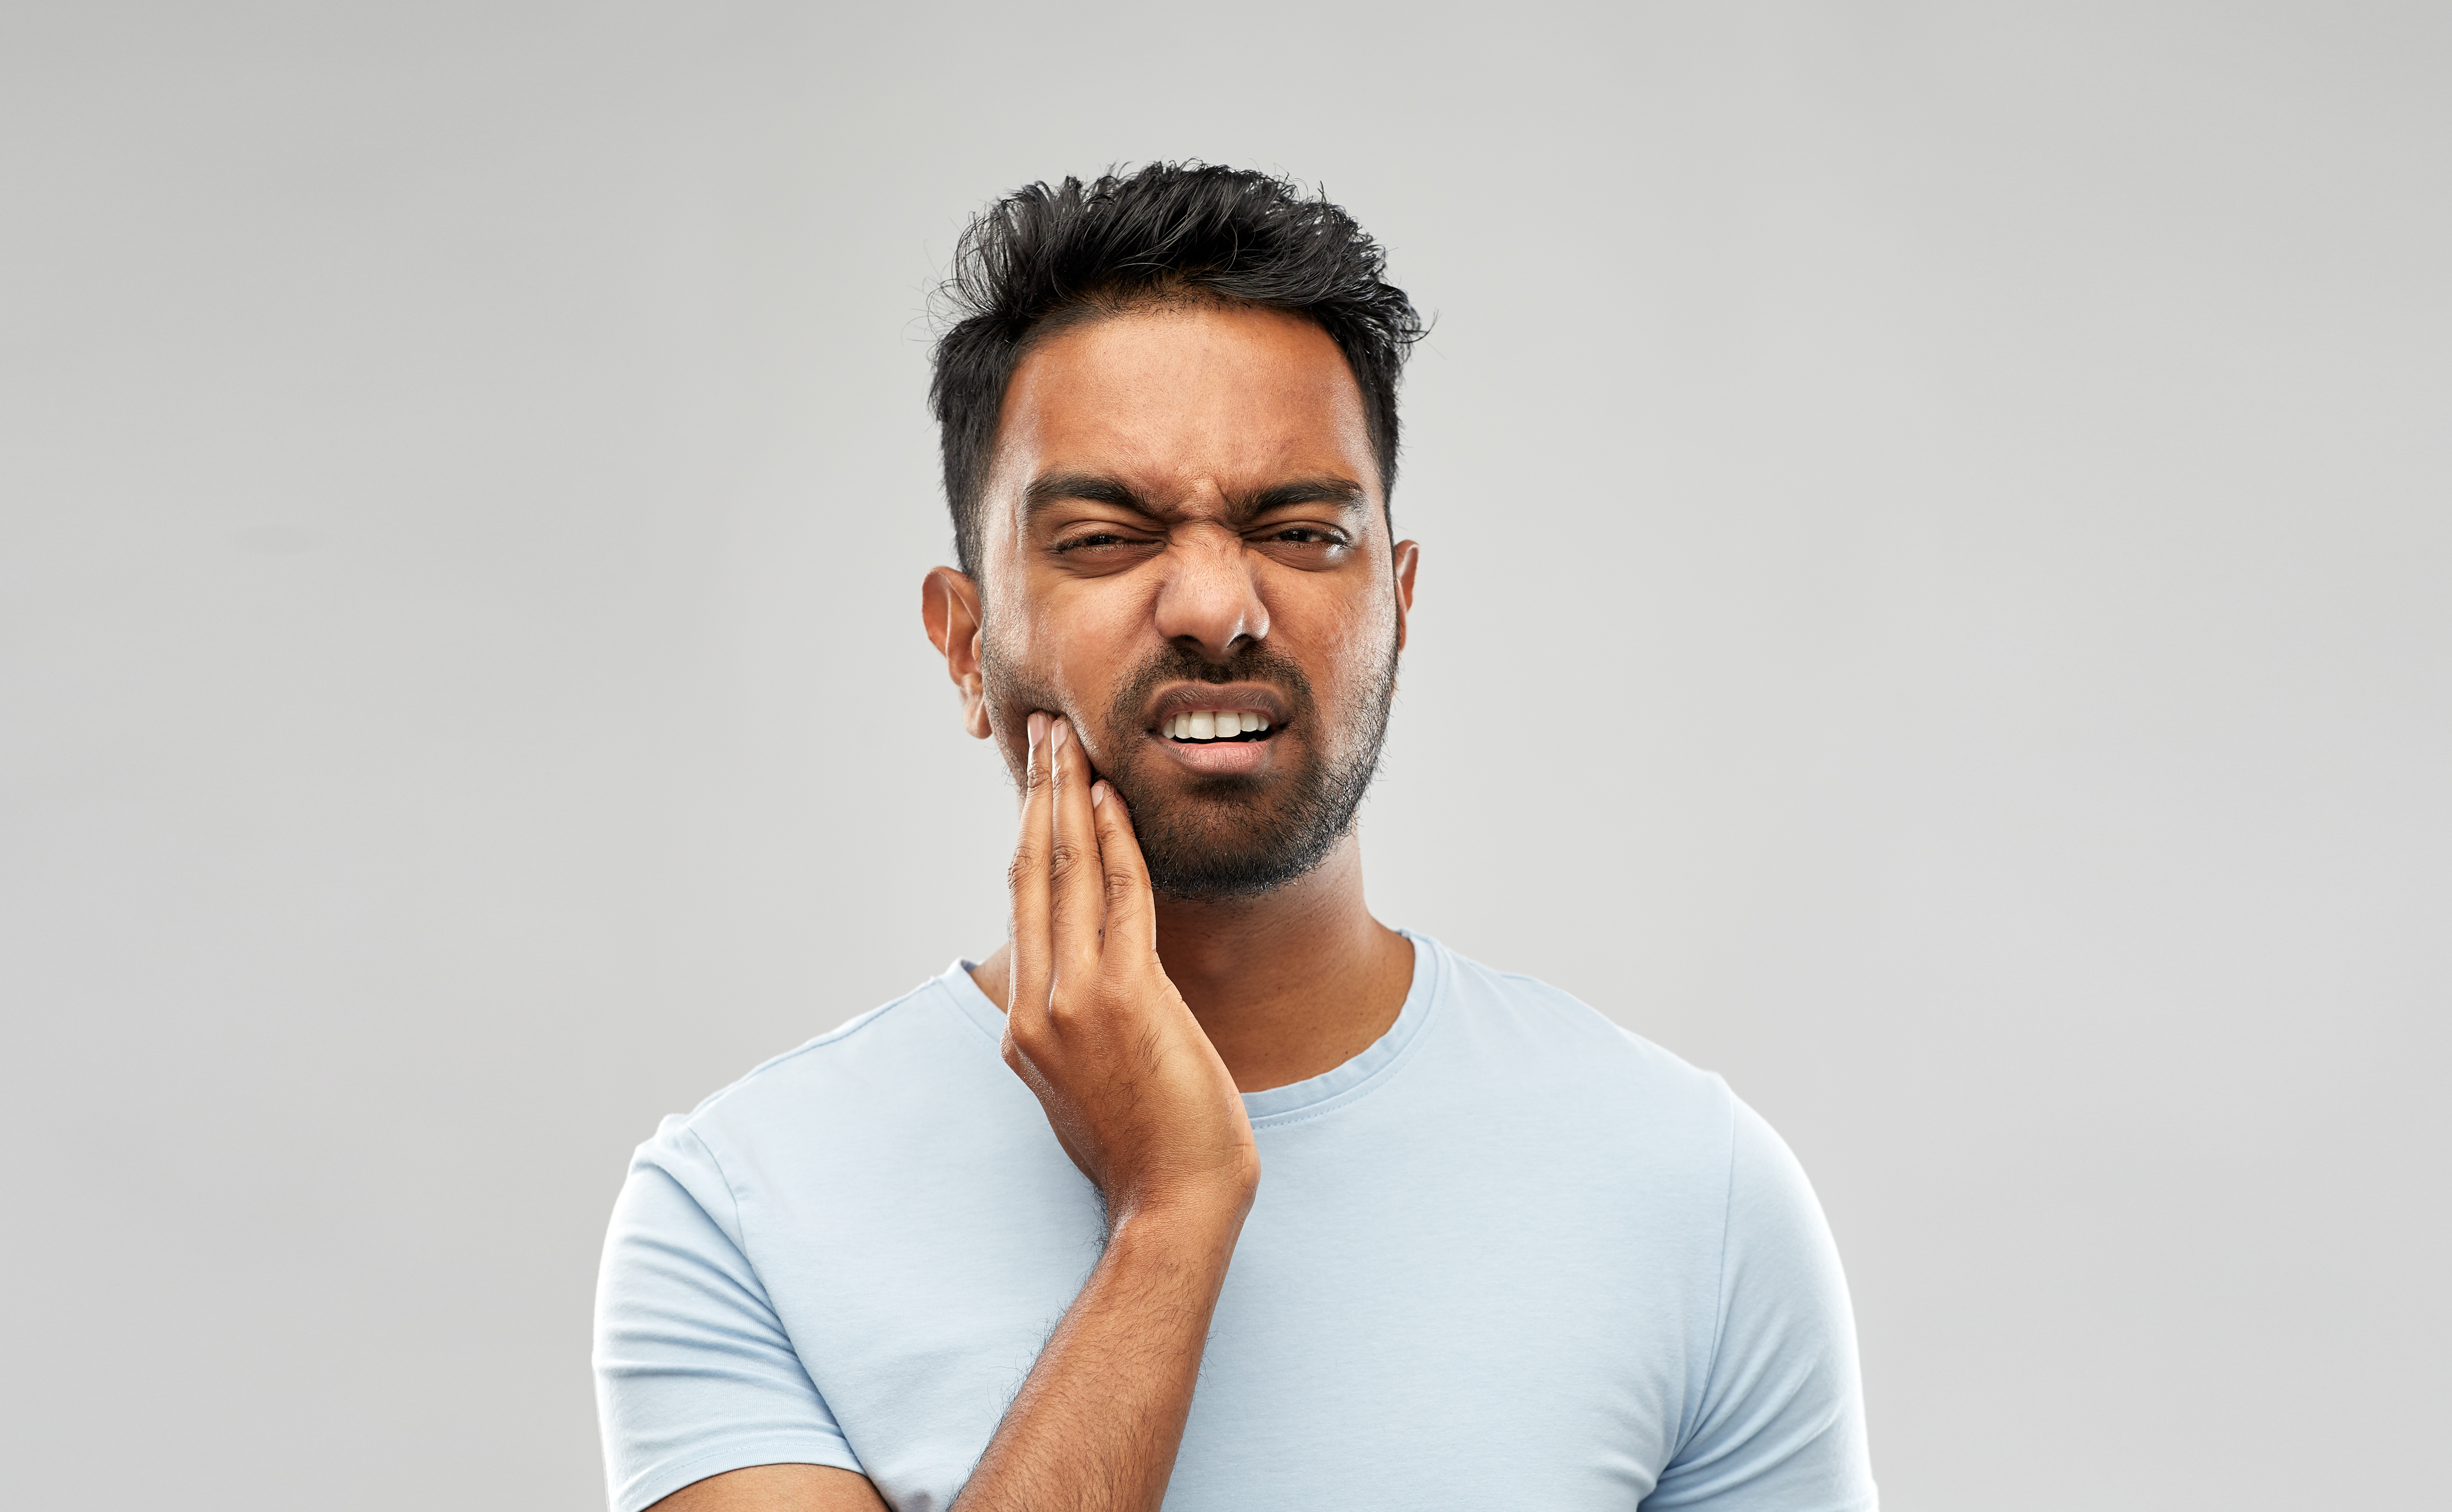 With persistent jaw pain, whether it's from TMD or trismus, it's important to see a doctor for diagnosis.